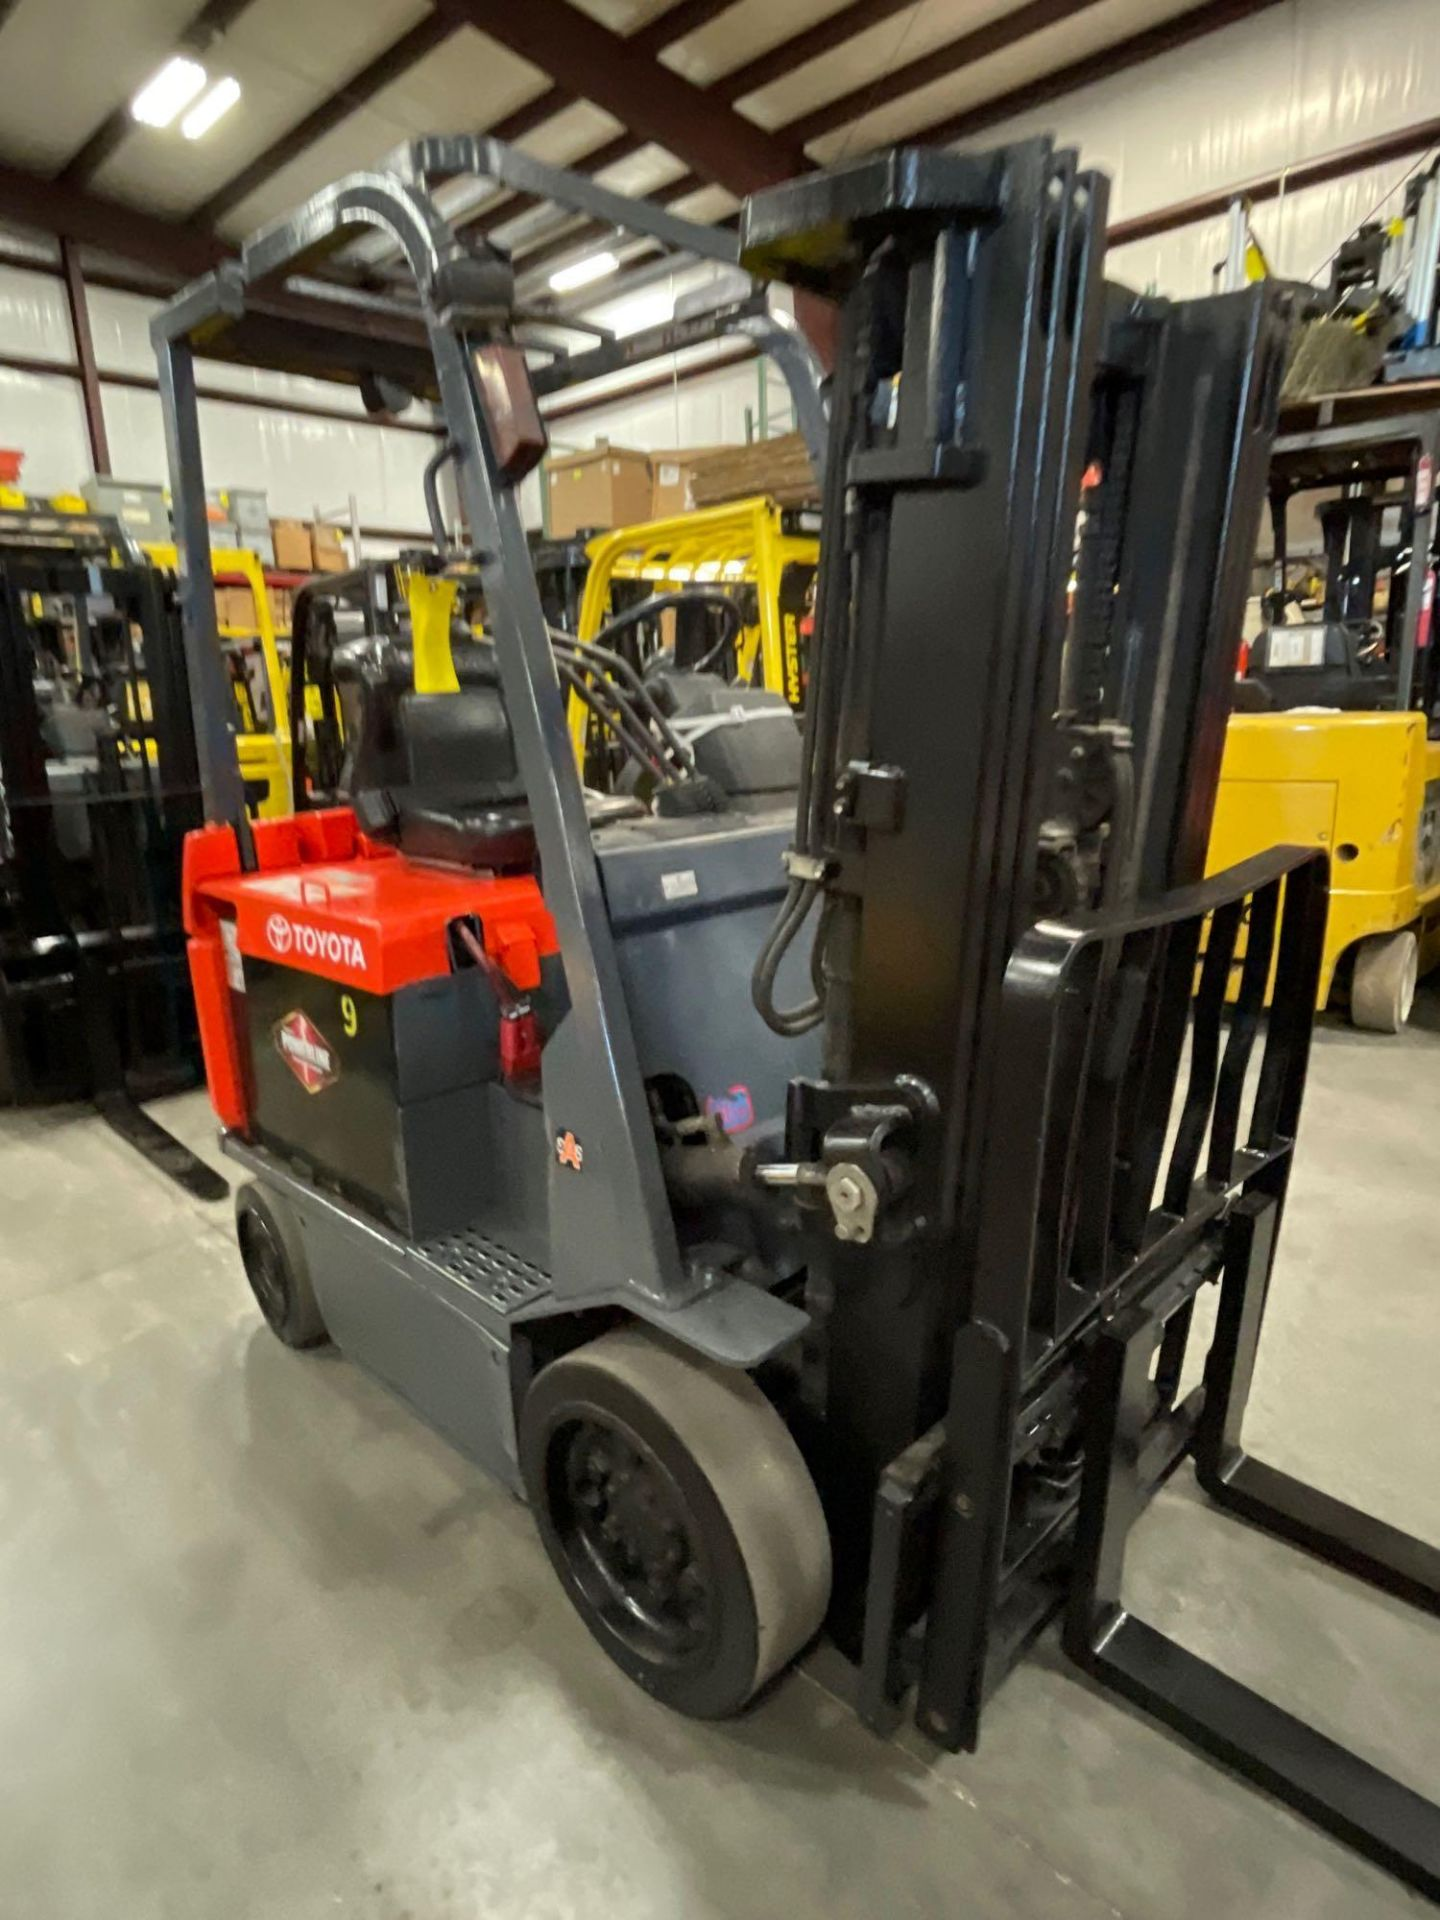 """TOYOTA 7FBCU25 ELECTRIC FORKLIFT, 5,000 LB CAPACITY, 170.5"""" HEIGHT CAPACITY - Image 3 of 20"""